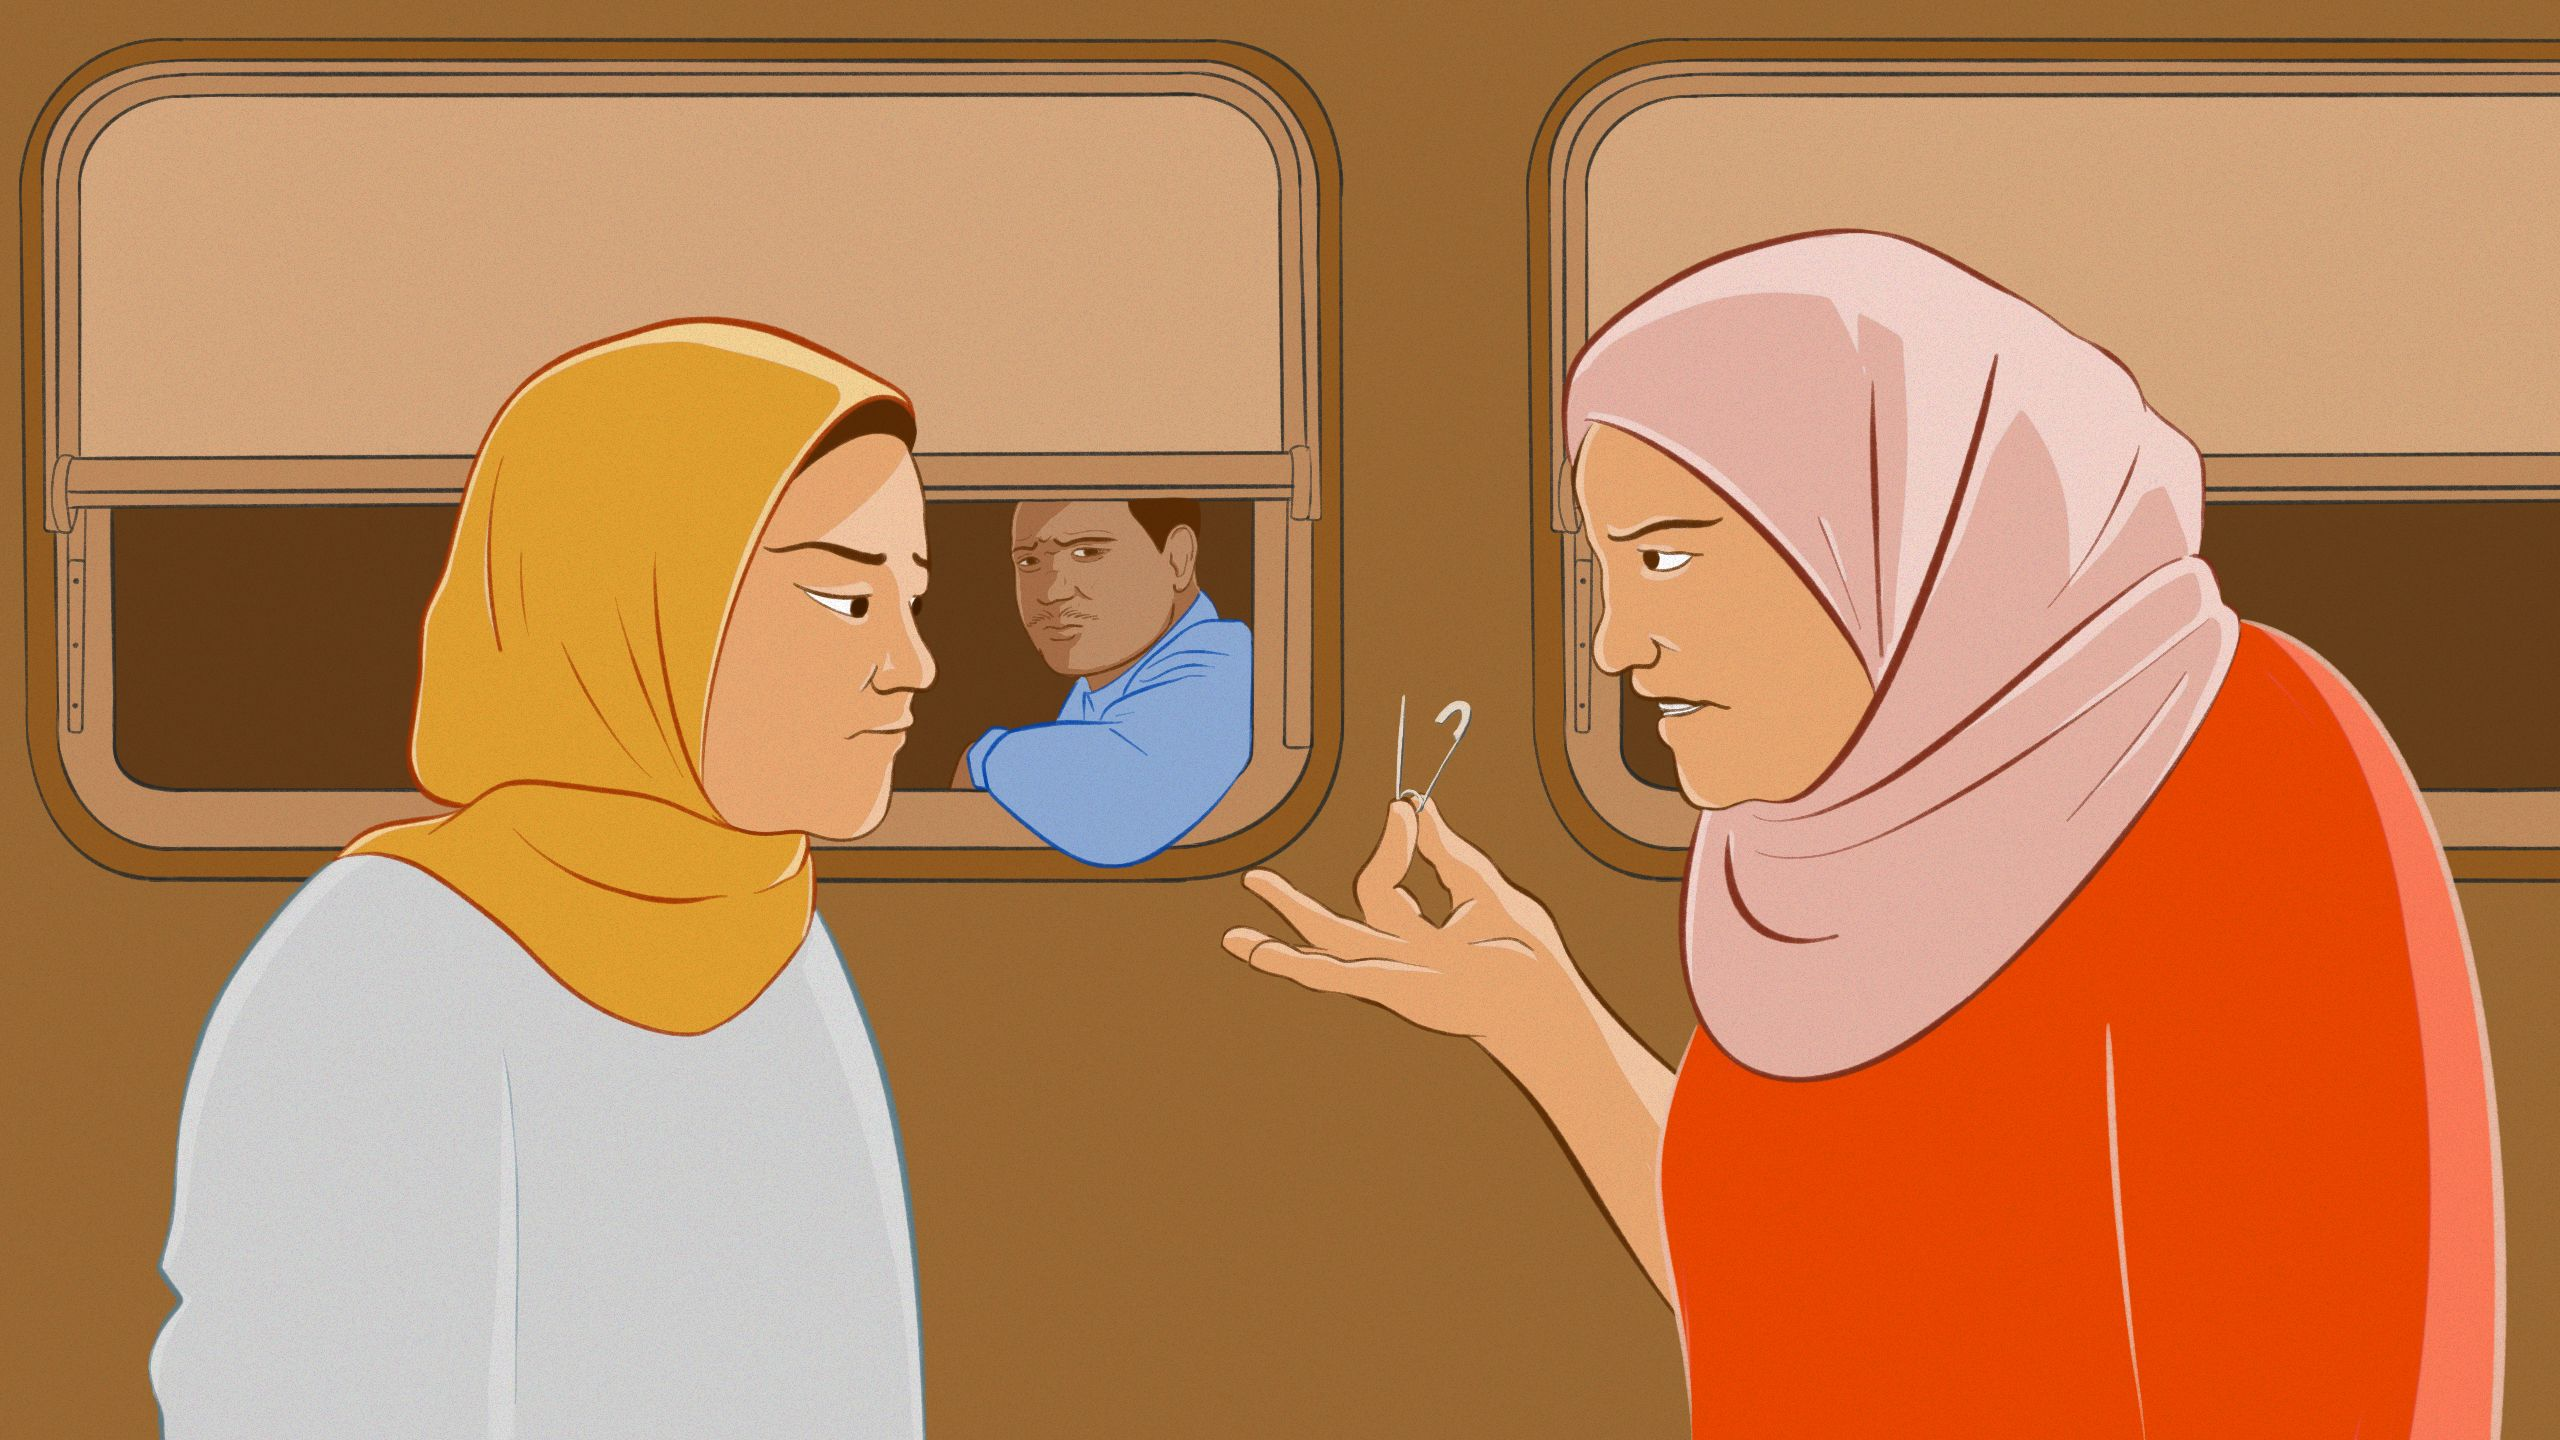 Combatting sexual harassment on public transport in Egypt: Zahara's story